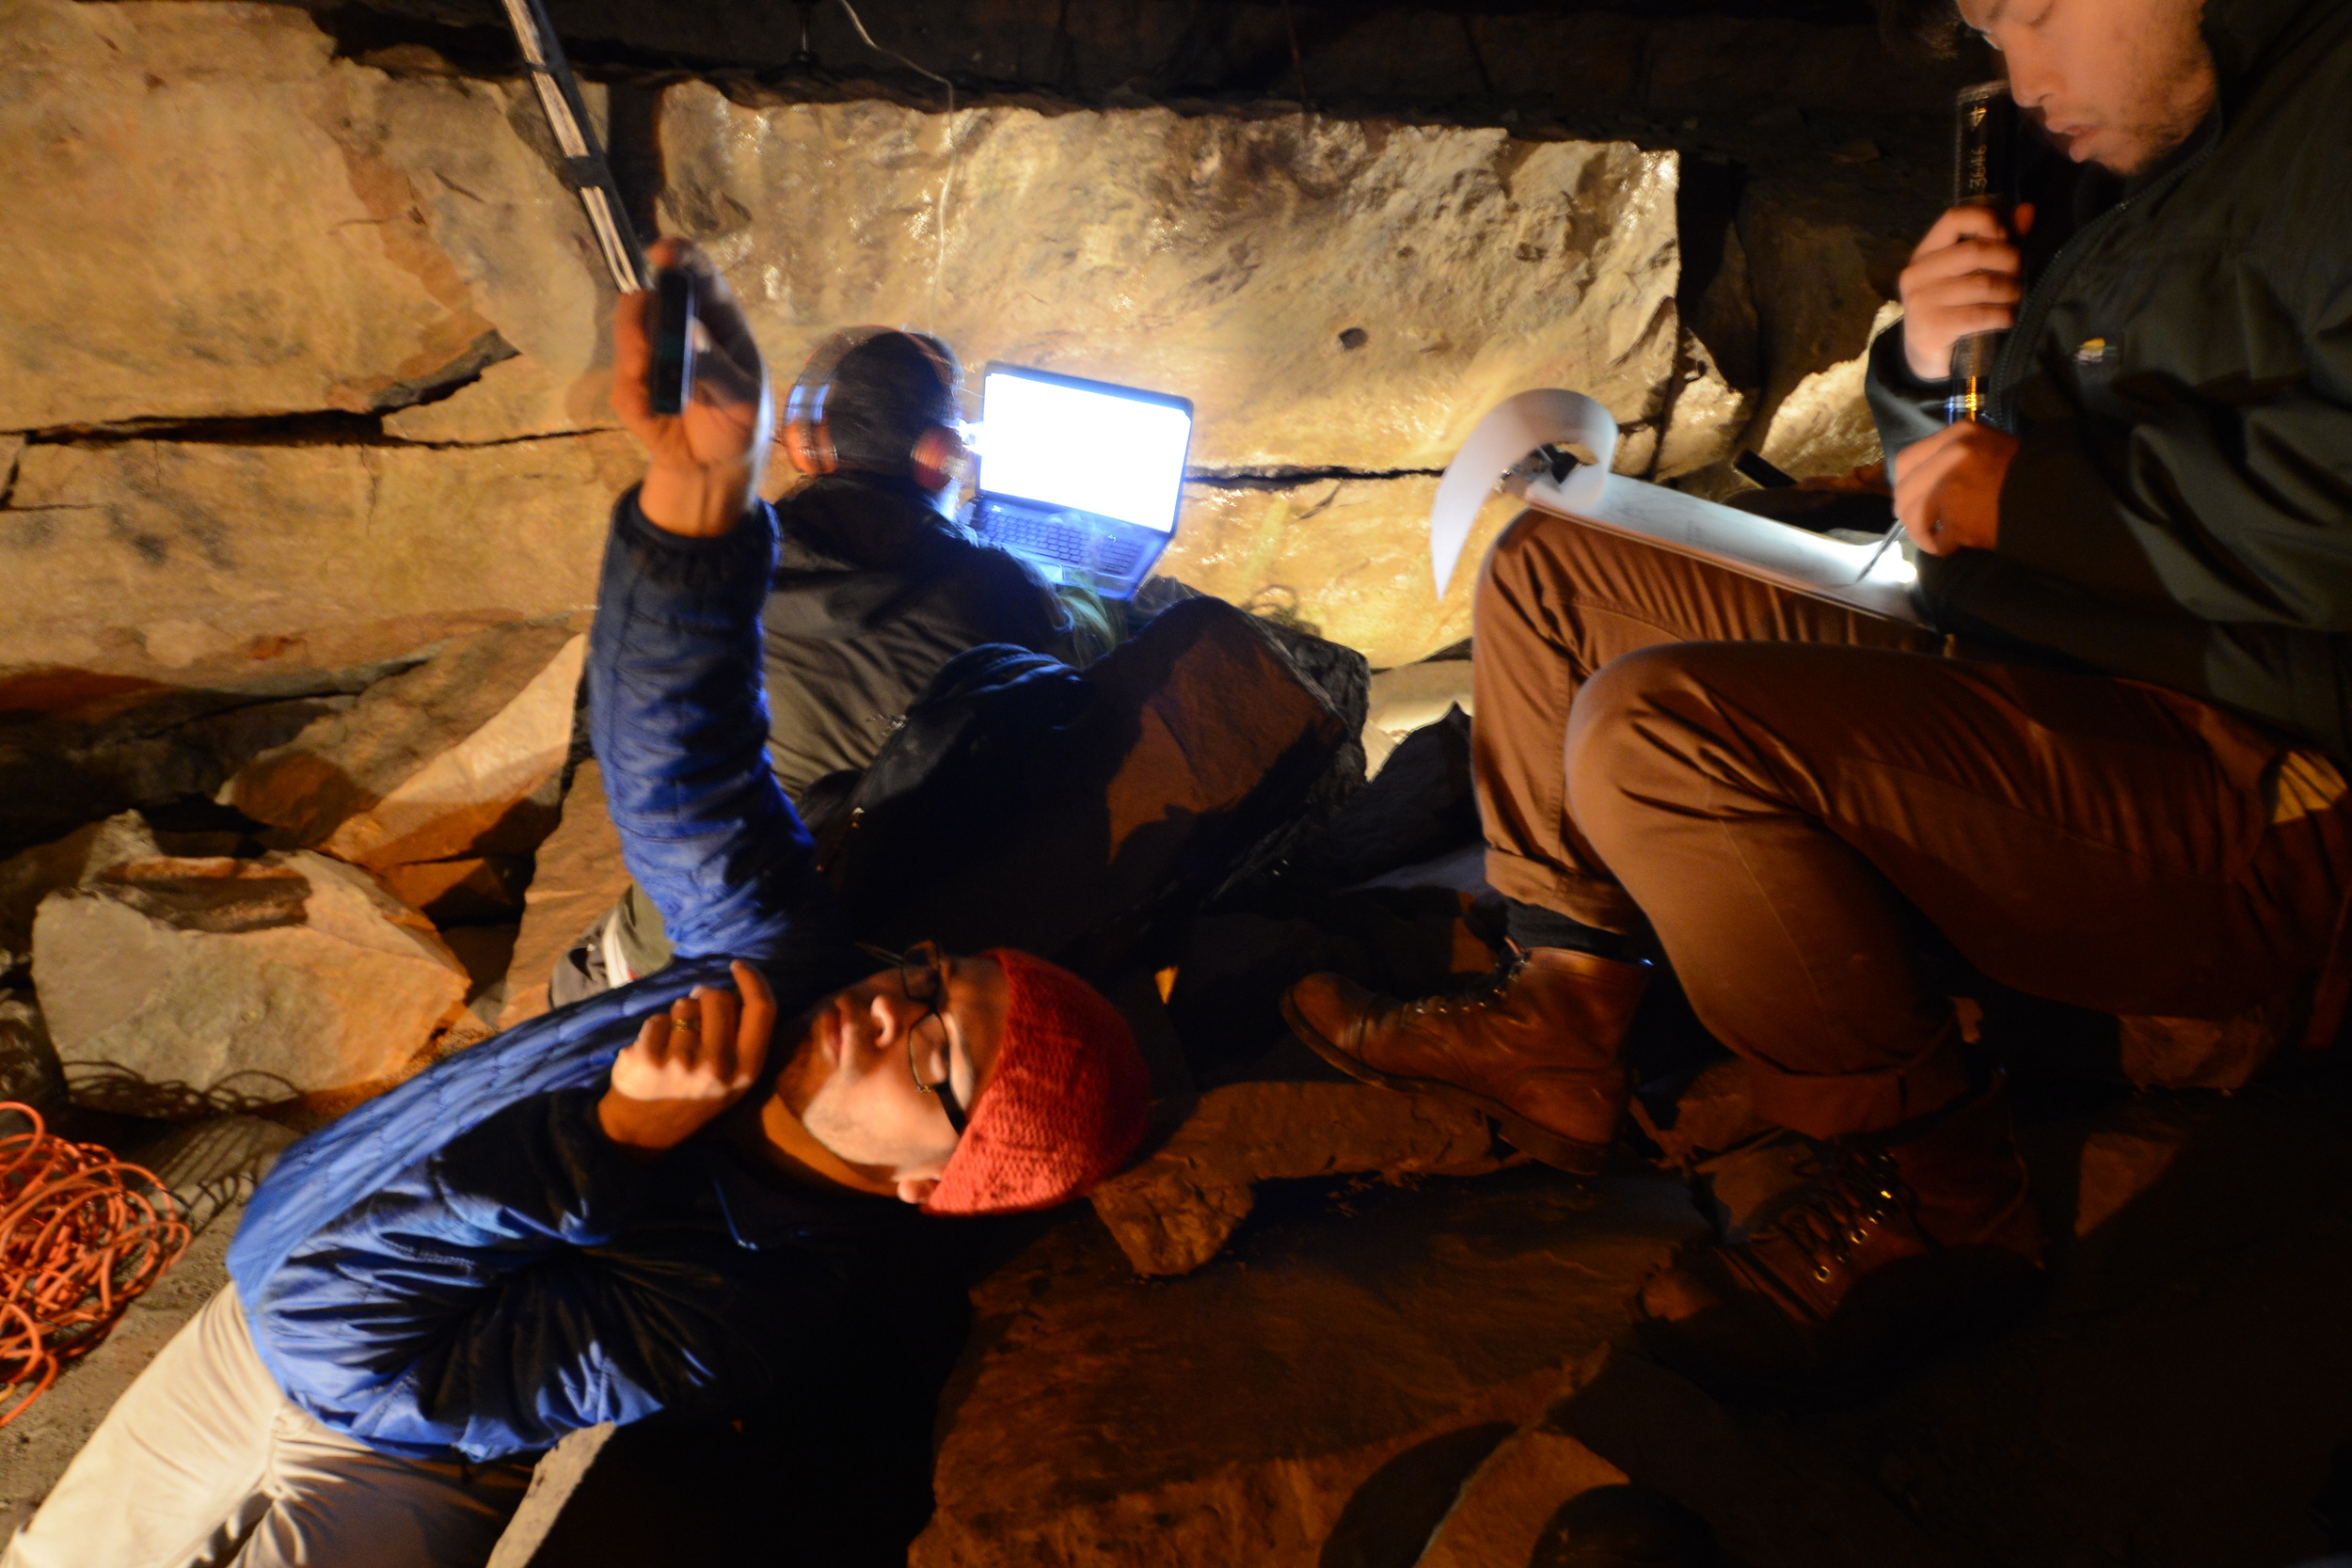 Here's a picture of us taking physical and sonic measurements in a fracture cave (Ryan Dewey, Ron Jost, Andrew Boji Wang, image taken by Jonathan Hooper). We were measuring the propagation of sound waves on the fossilized ancient seabed ripples where the dolomite layer meets the upper layer of limestone.